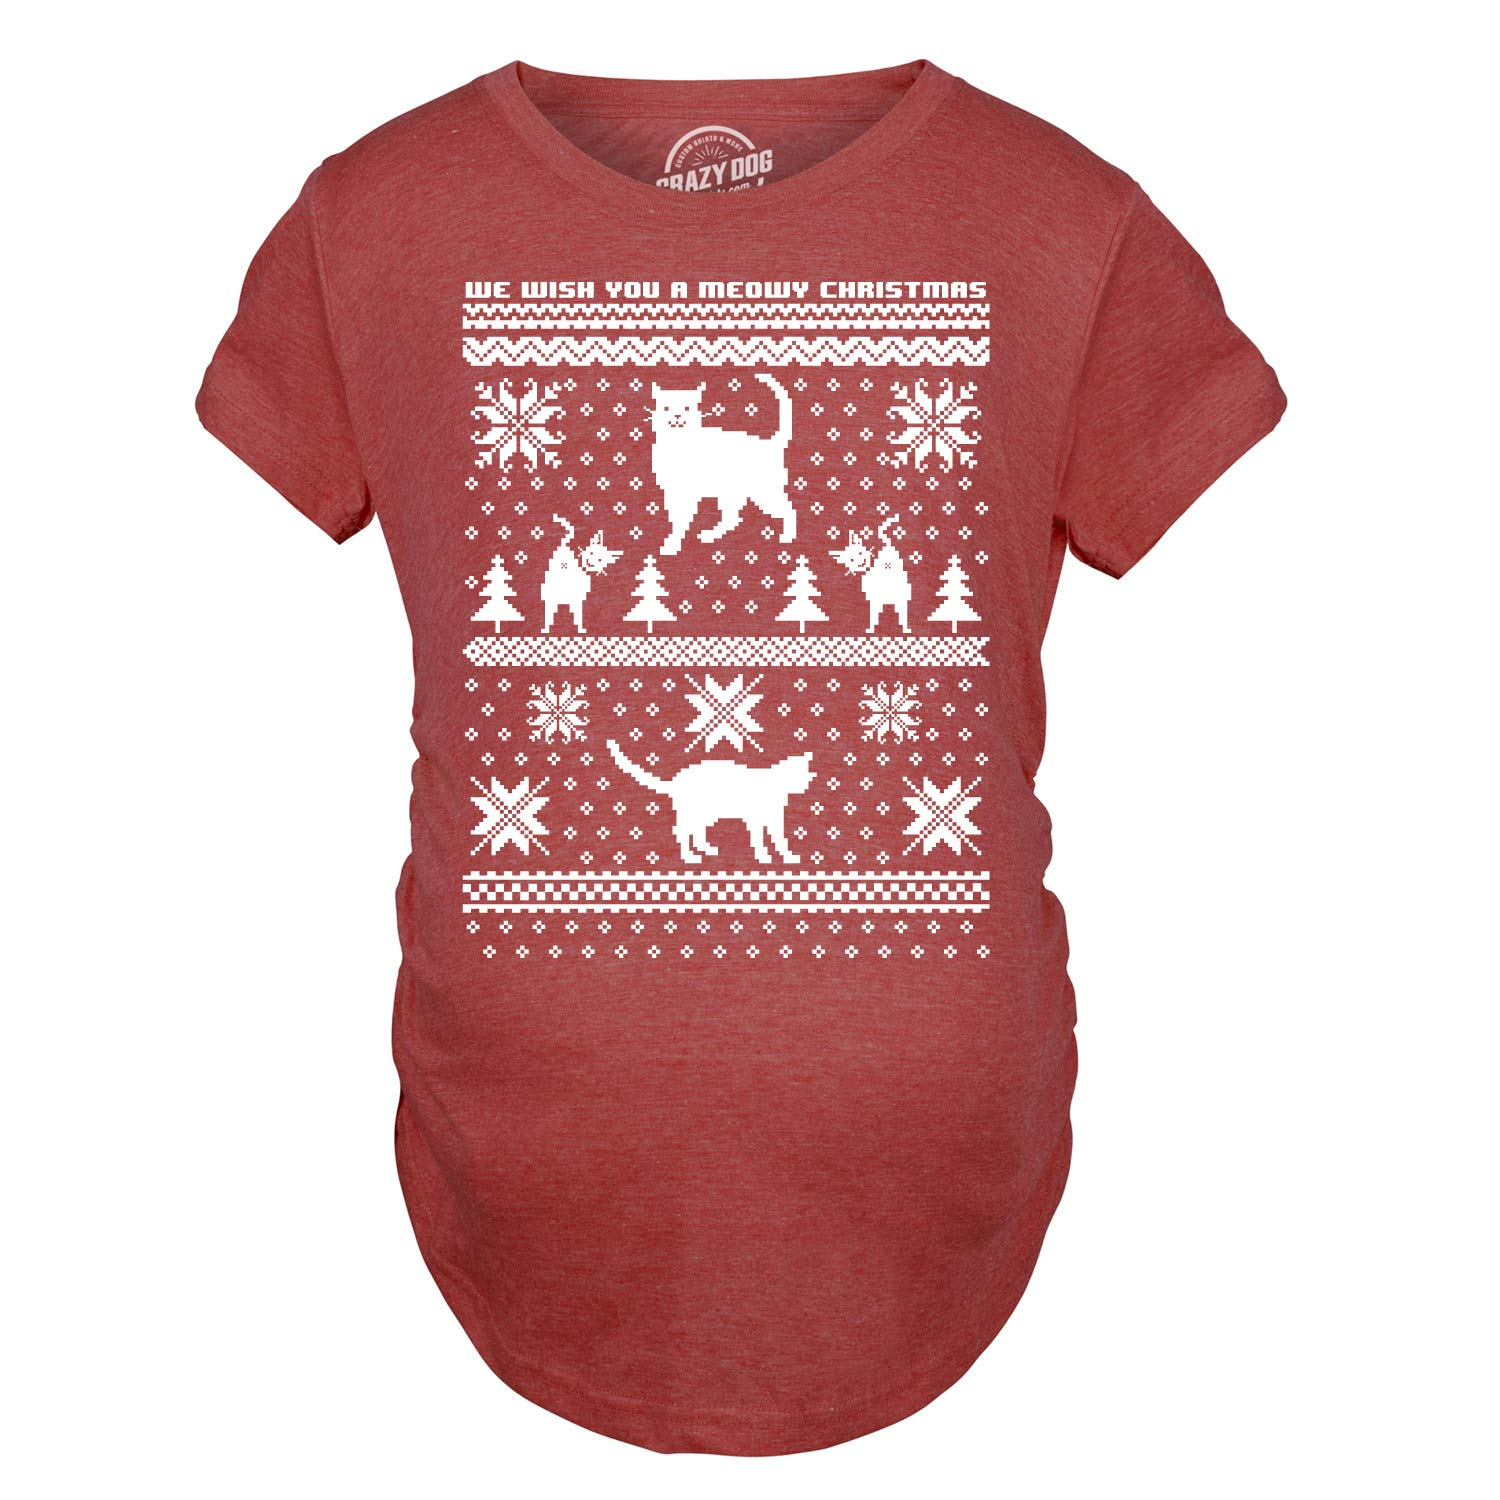 Maternity 8 Bit Cat Butt Ugly Christmas Sweater Funny Expecting Pregnancy T Shir Crazy Dog Tshirts